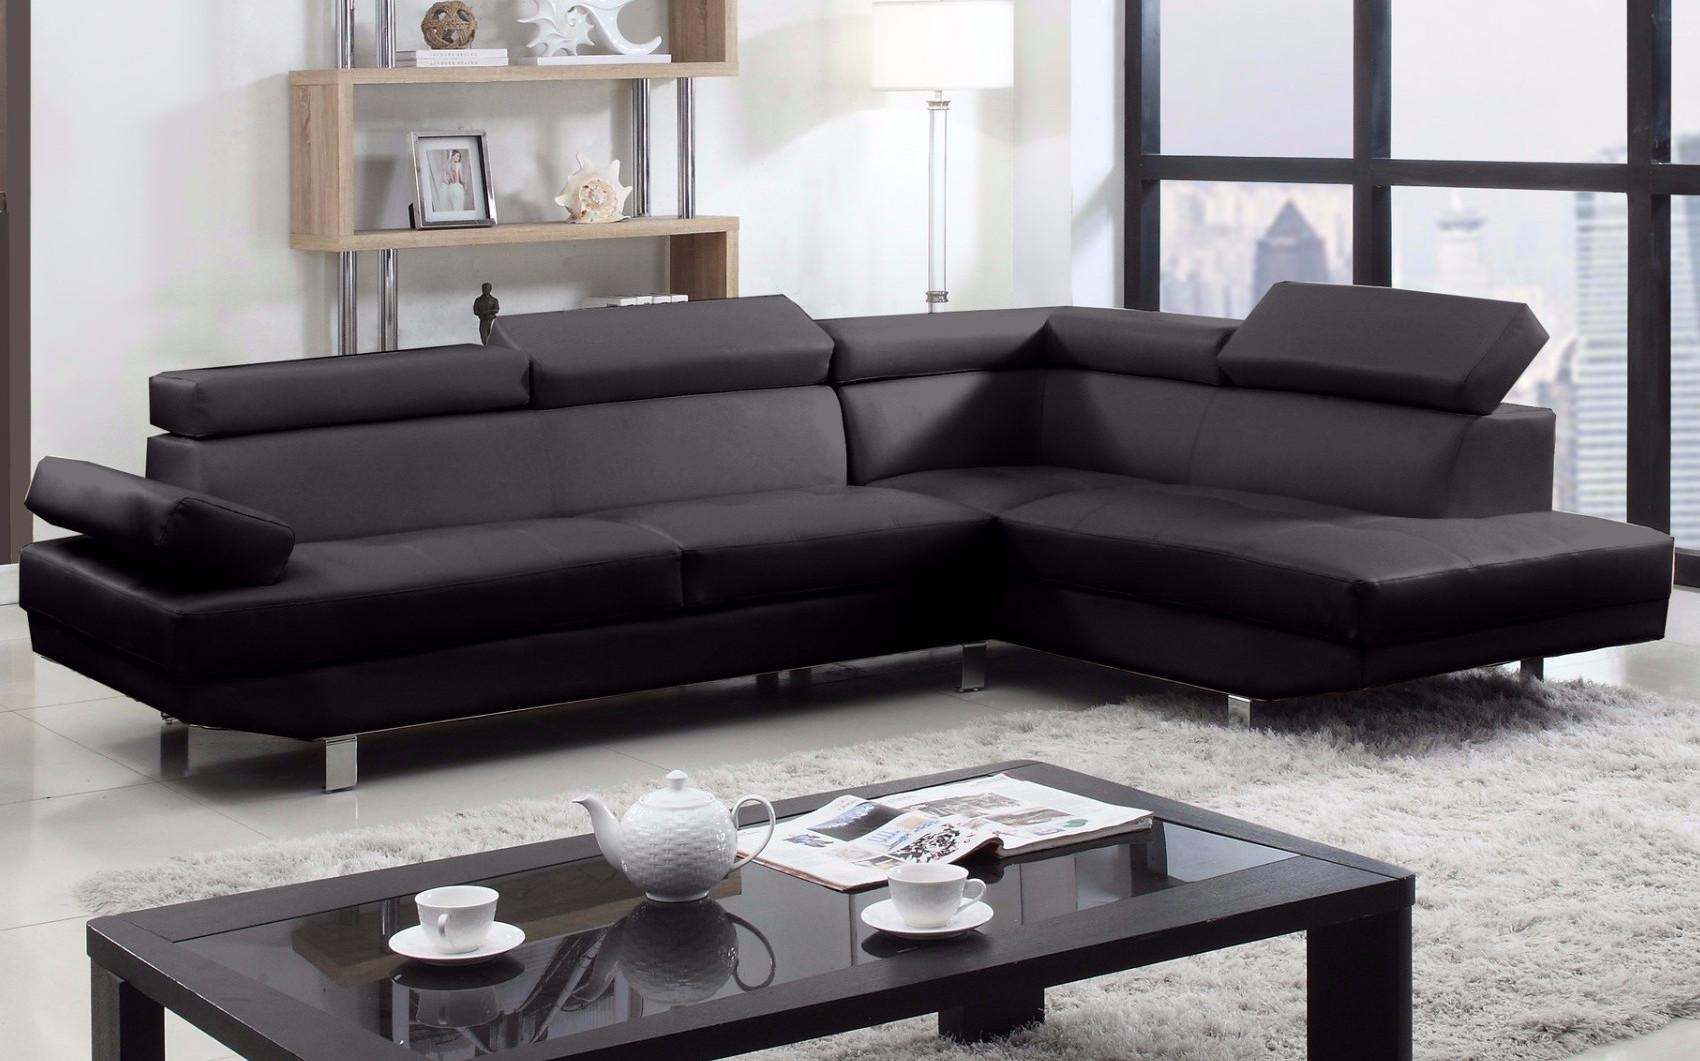 2 Piece Modern Bonded Leather Right Facing Chaise Sectional Sofa Throughout Sectional Sofa With 2 Chaises (View 5 of 20)